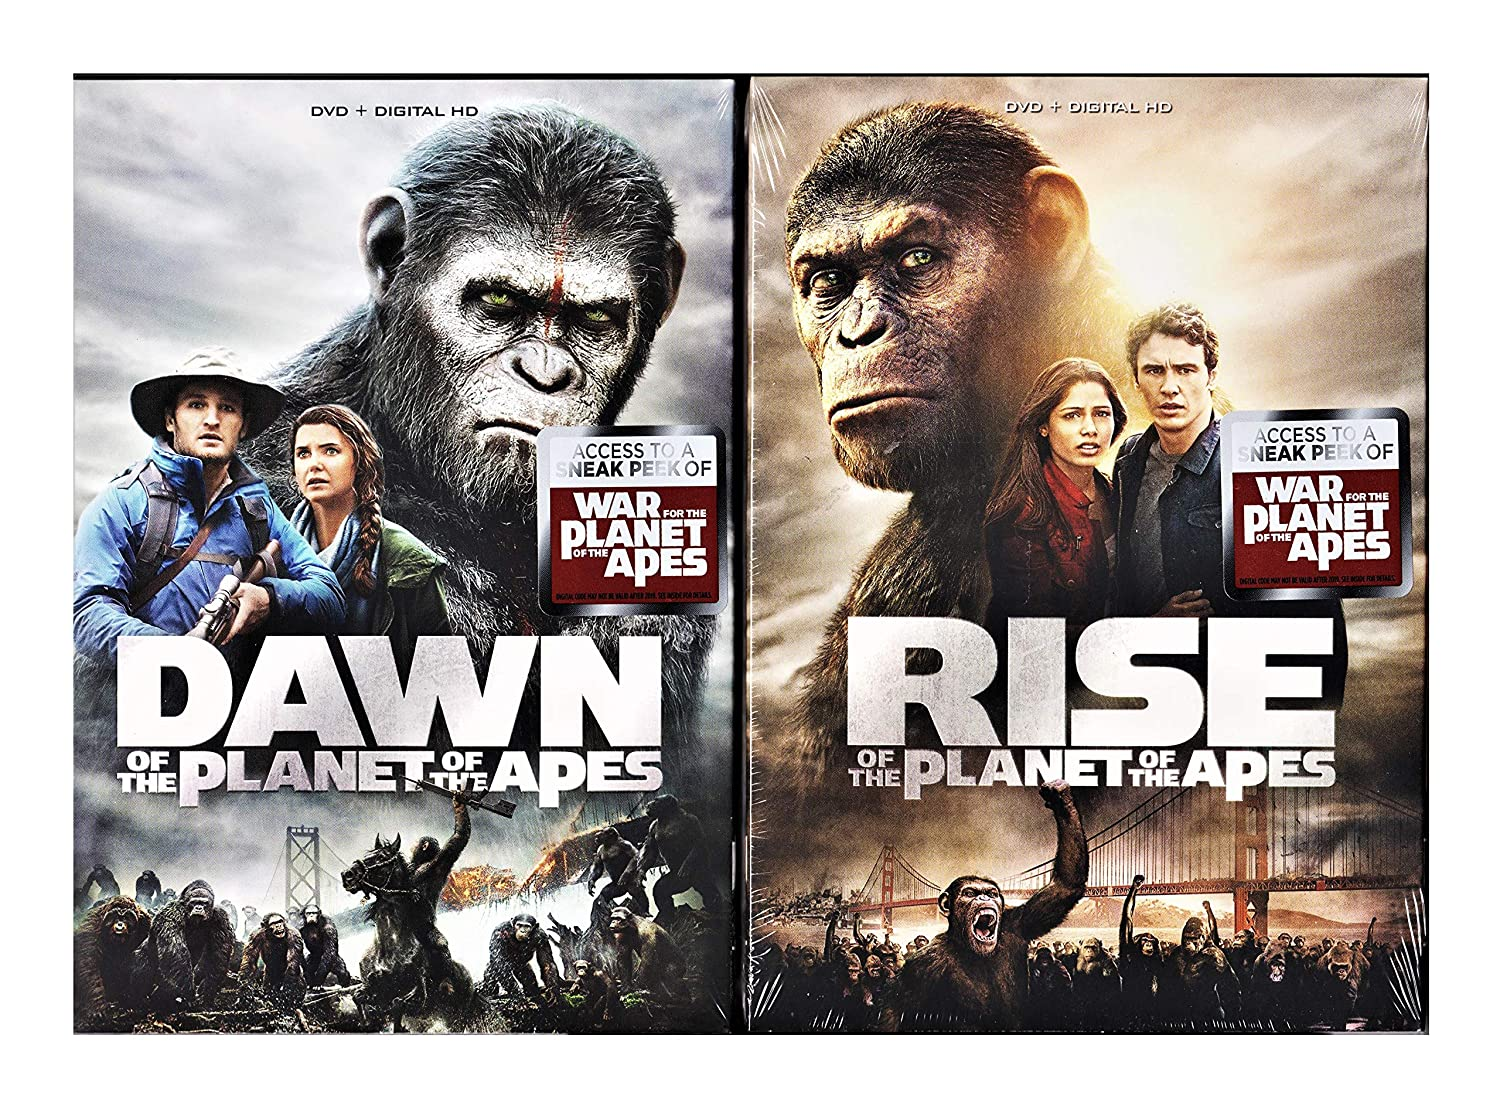 Amazon Com The Apes 2 Pack Dawn Rise Of The Planet Of The Apes 2001 Movie Double Feature Sci Fi Bundle James Franco Andy Serkis Rupert Wyatt Movies Tv